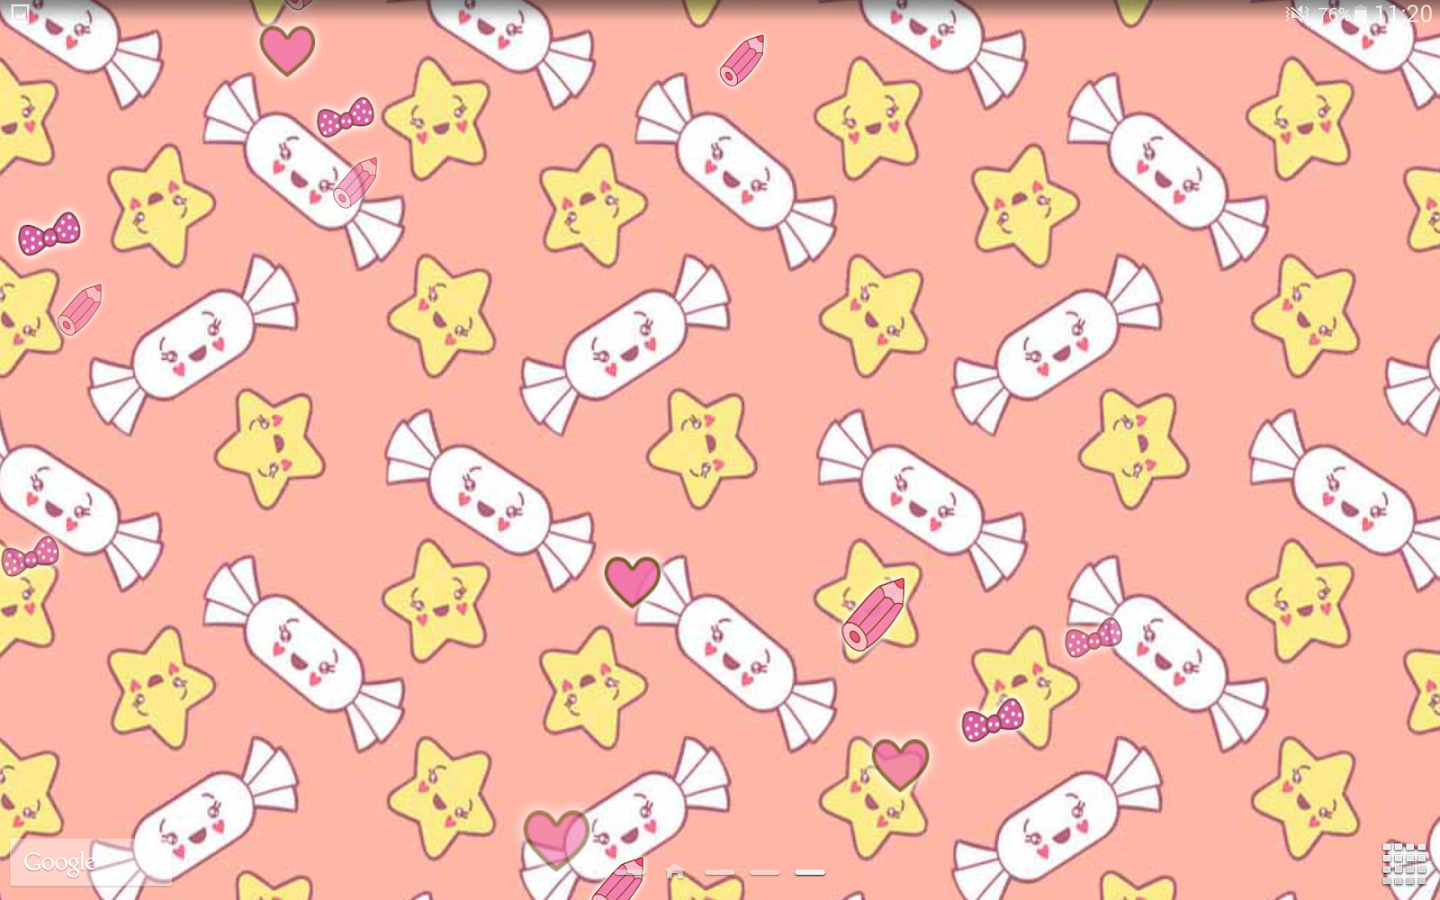 Cute Patterns Live Wallpaper - Android Apps on Google Play